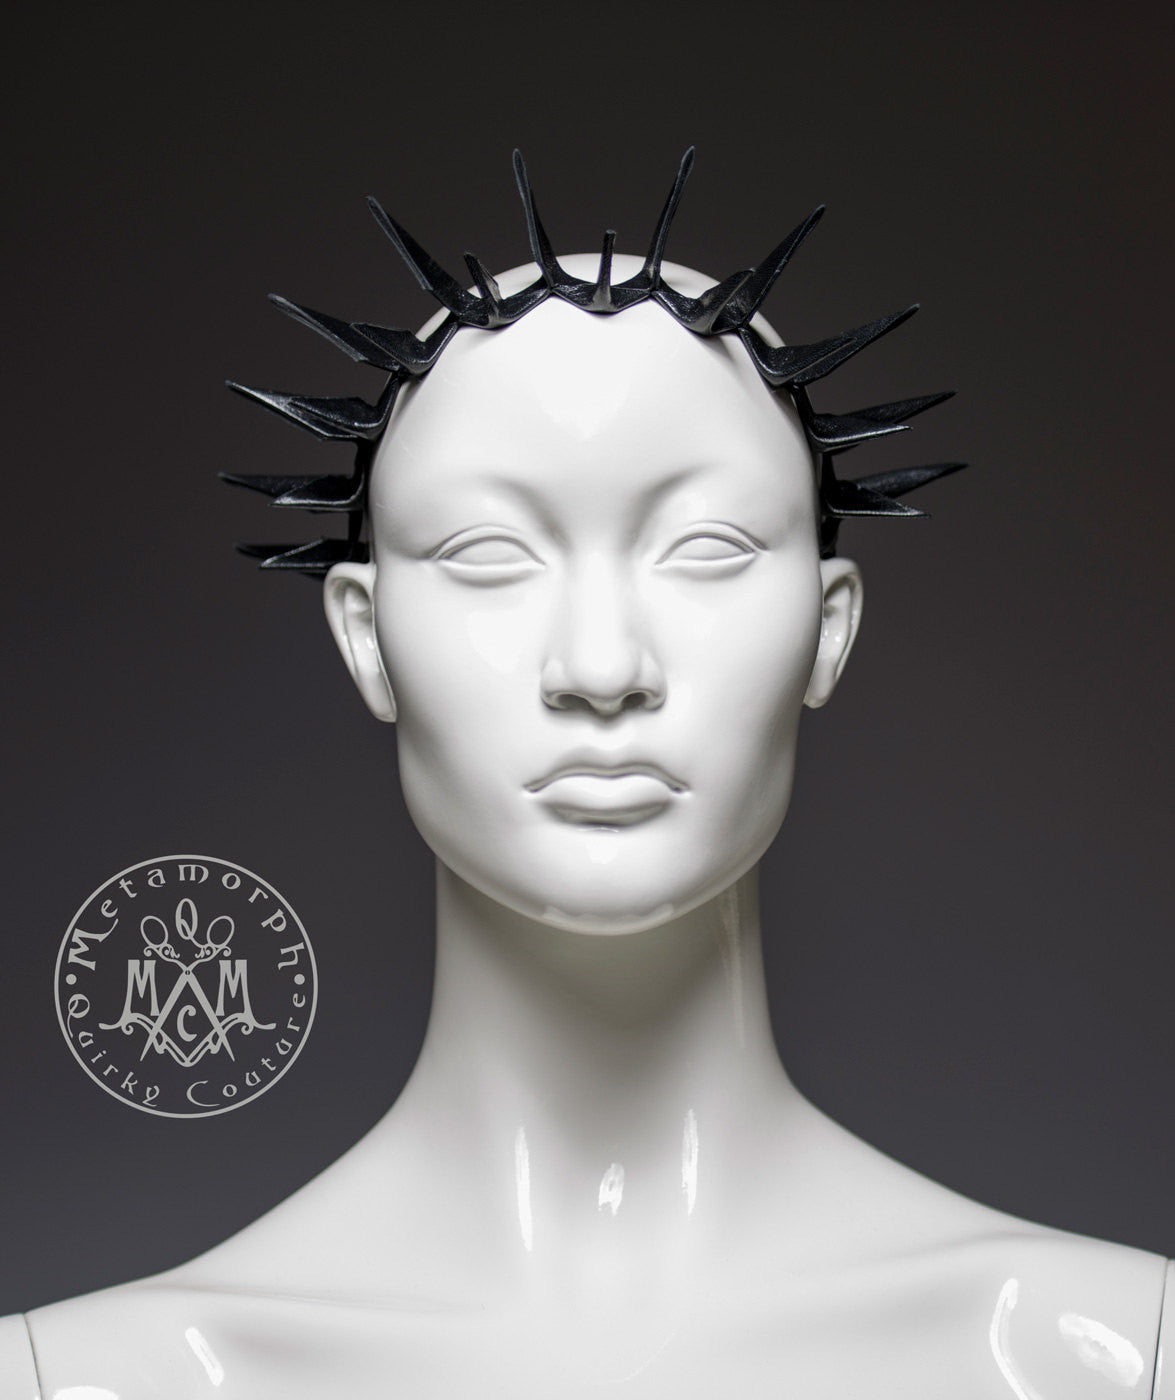 Black leather spike headband crown or spiky leather collar